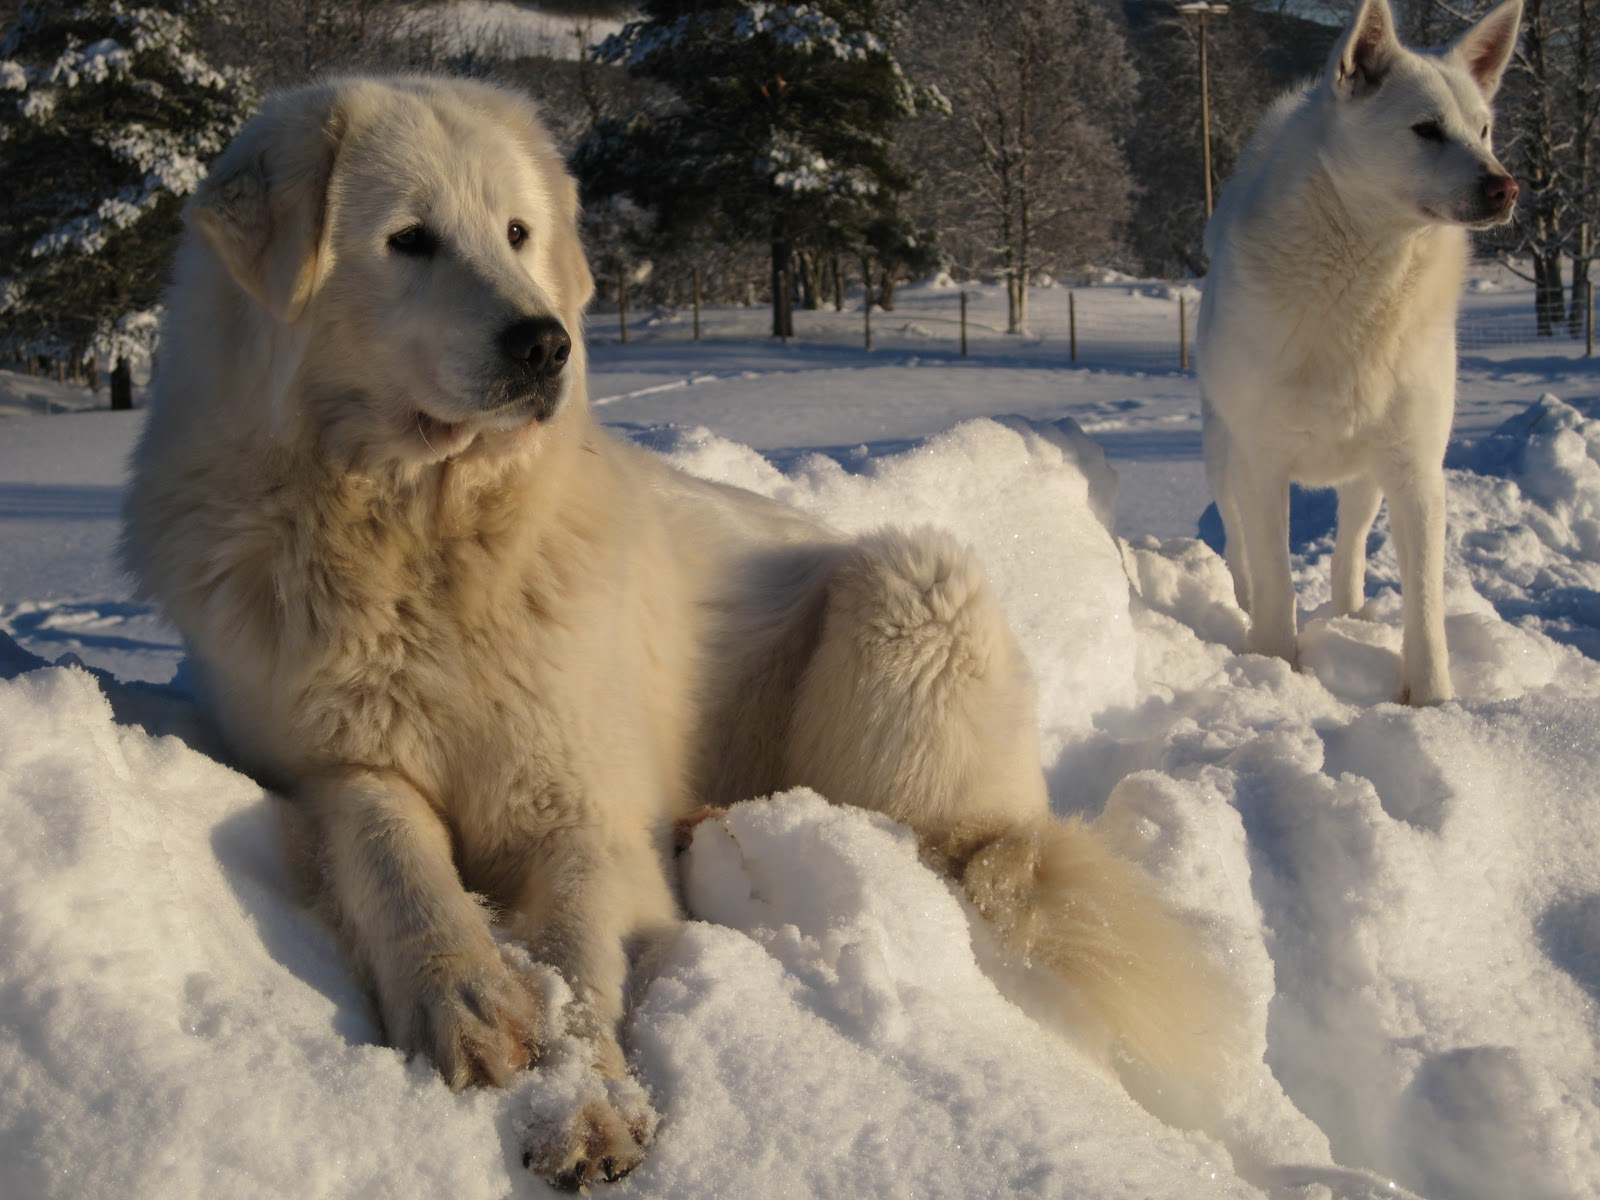 Dogs in the snow wallpaper   ForWallpapercom 1600x1200